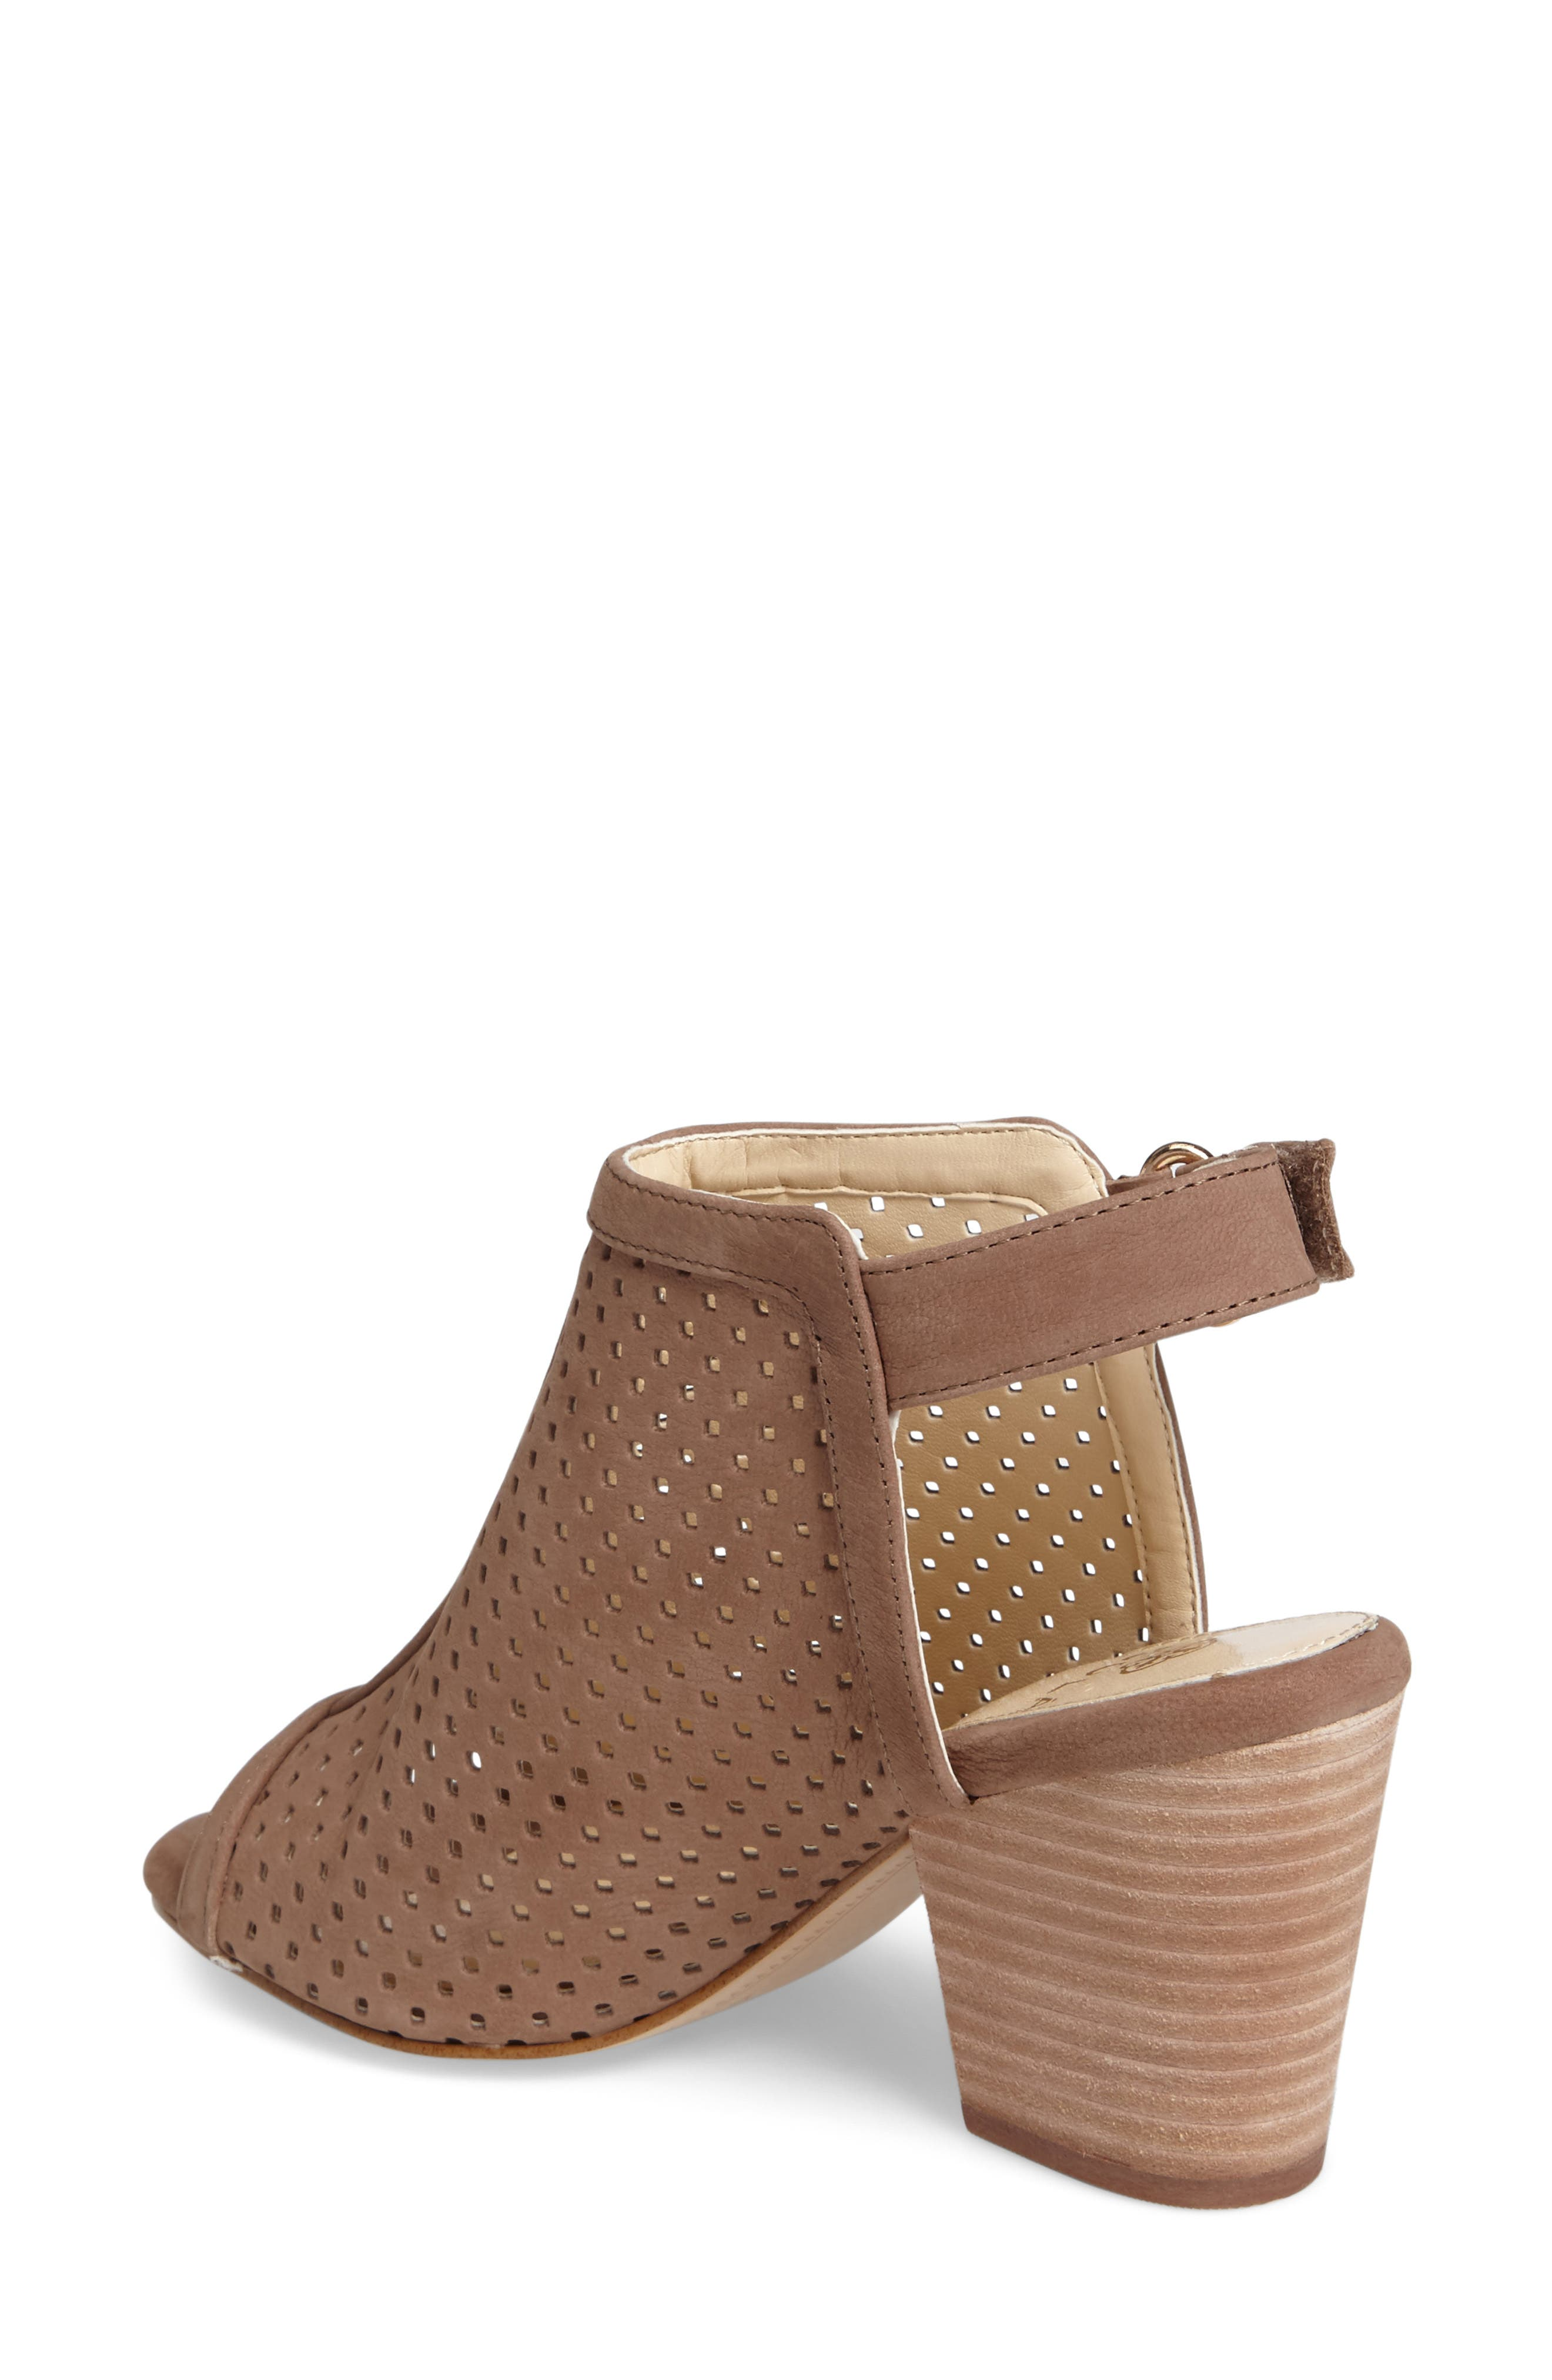 'Lora' Perforated Open-Toe Bootie Sandal,                             Alternate thumbnail 2, color,                             BARLEY LEATHER